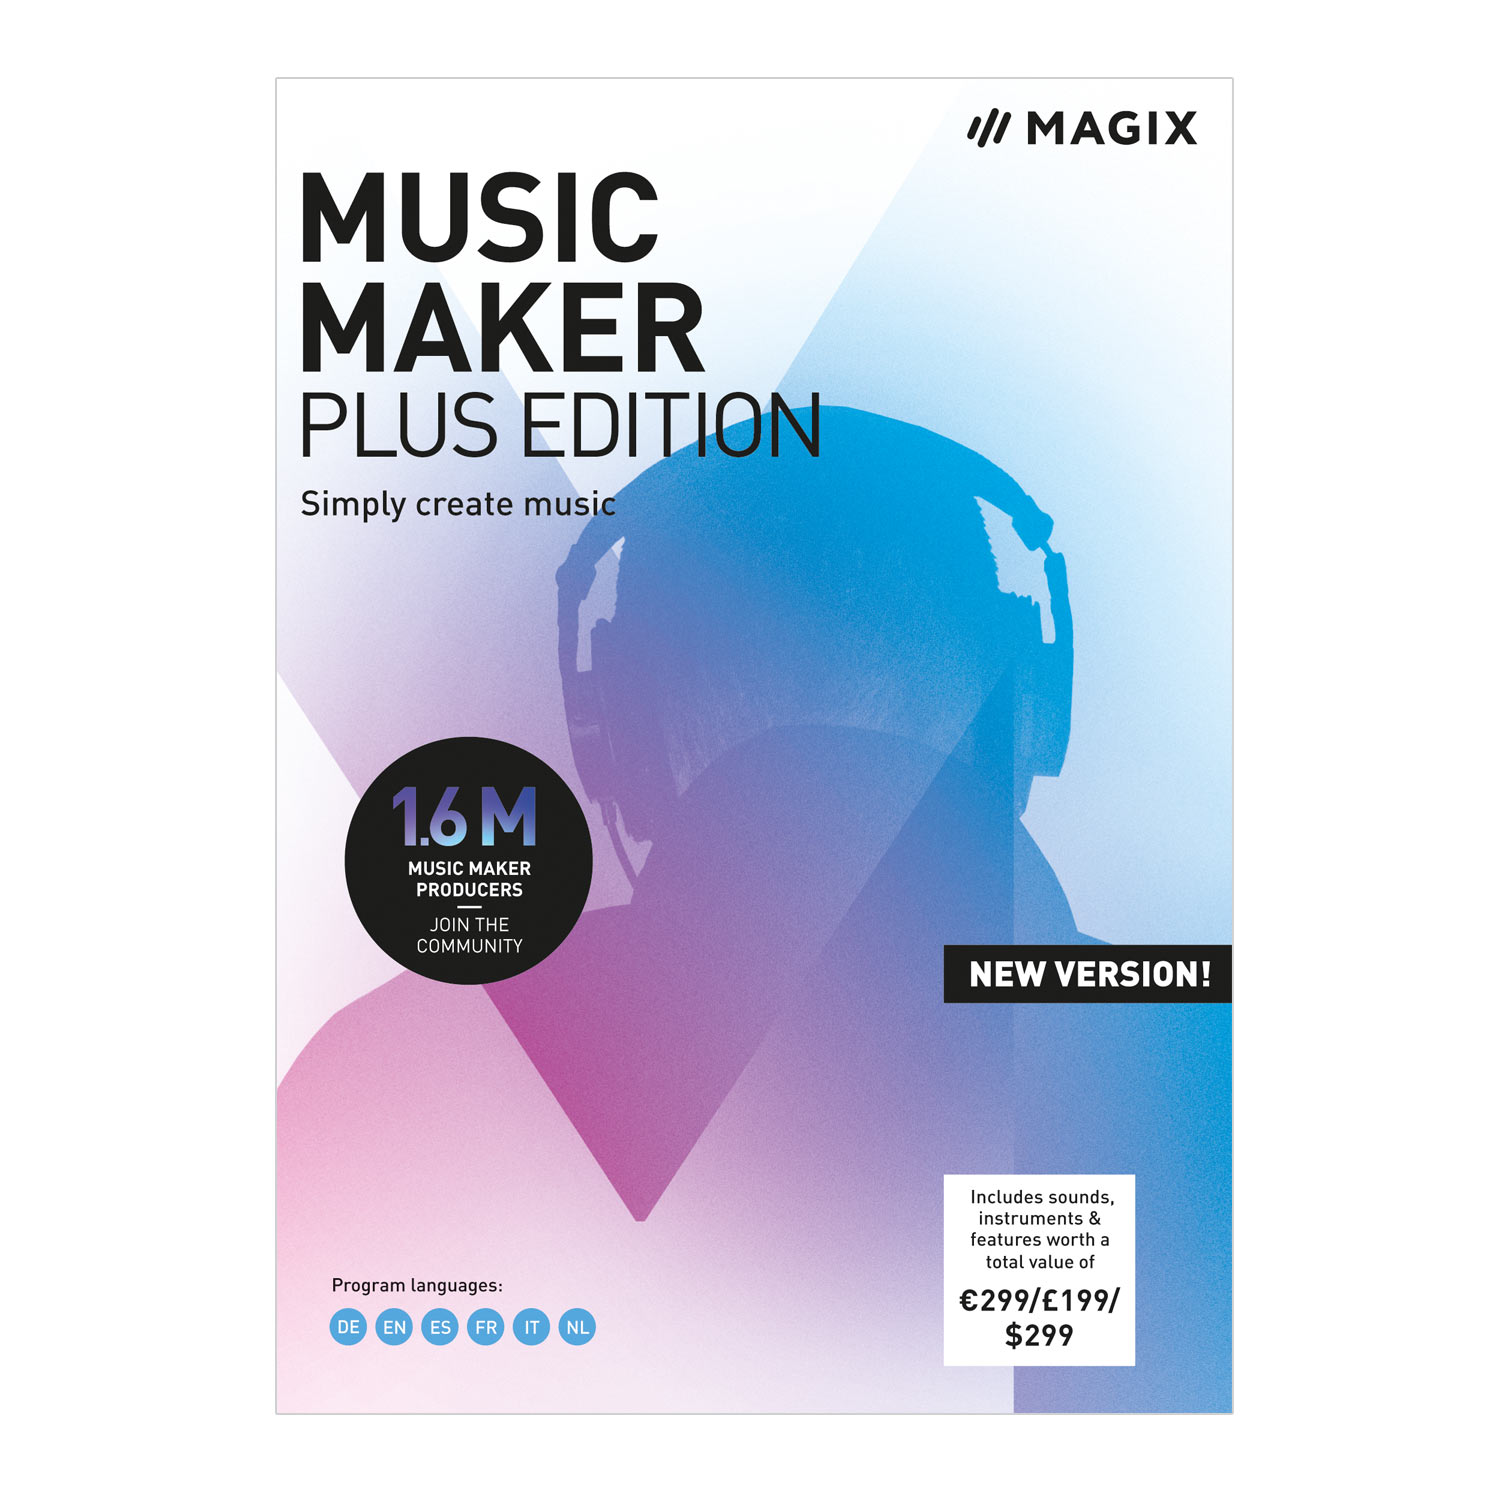 MAGIX Music Maker - 2019 Plus Edition - Produce, record and mix music [Download] by MAGIX